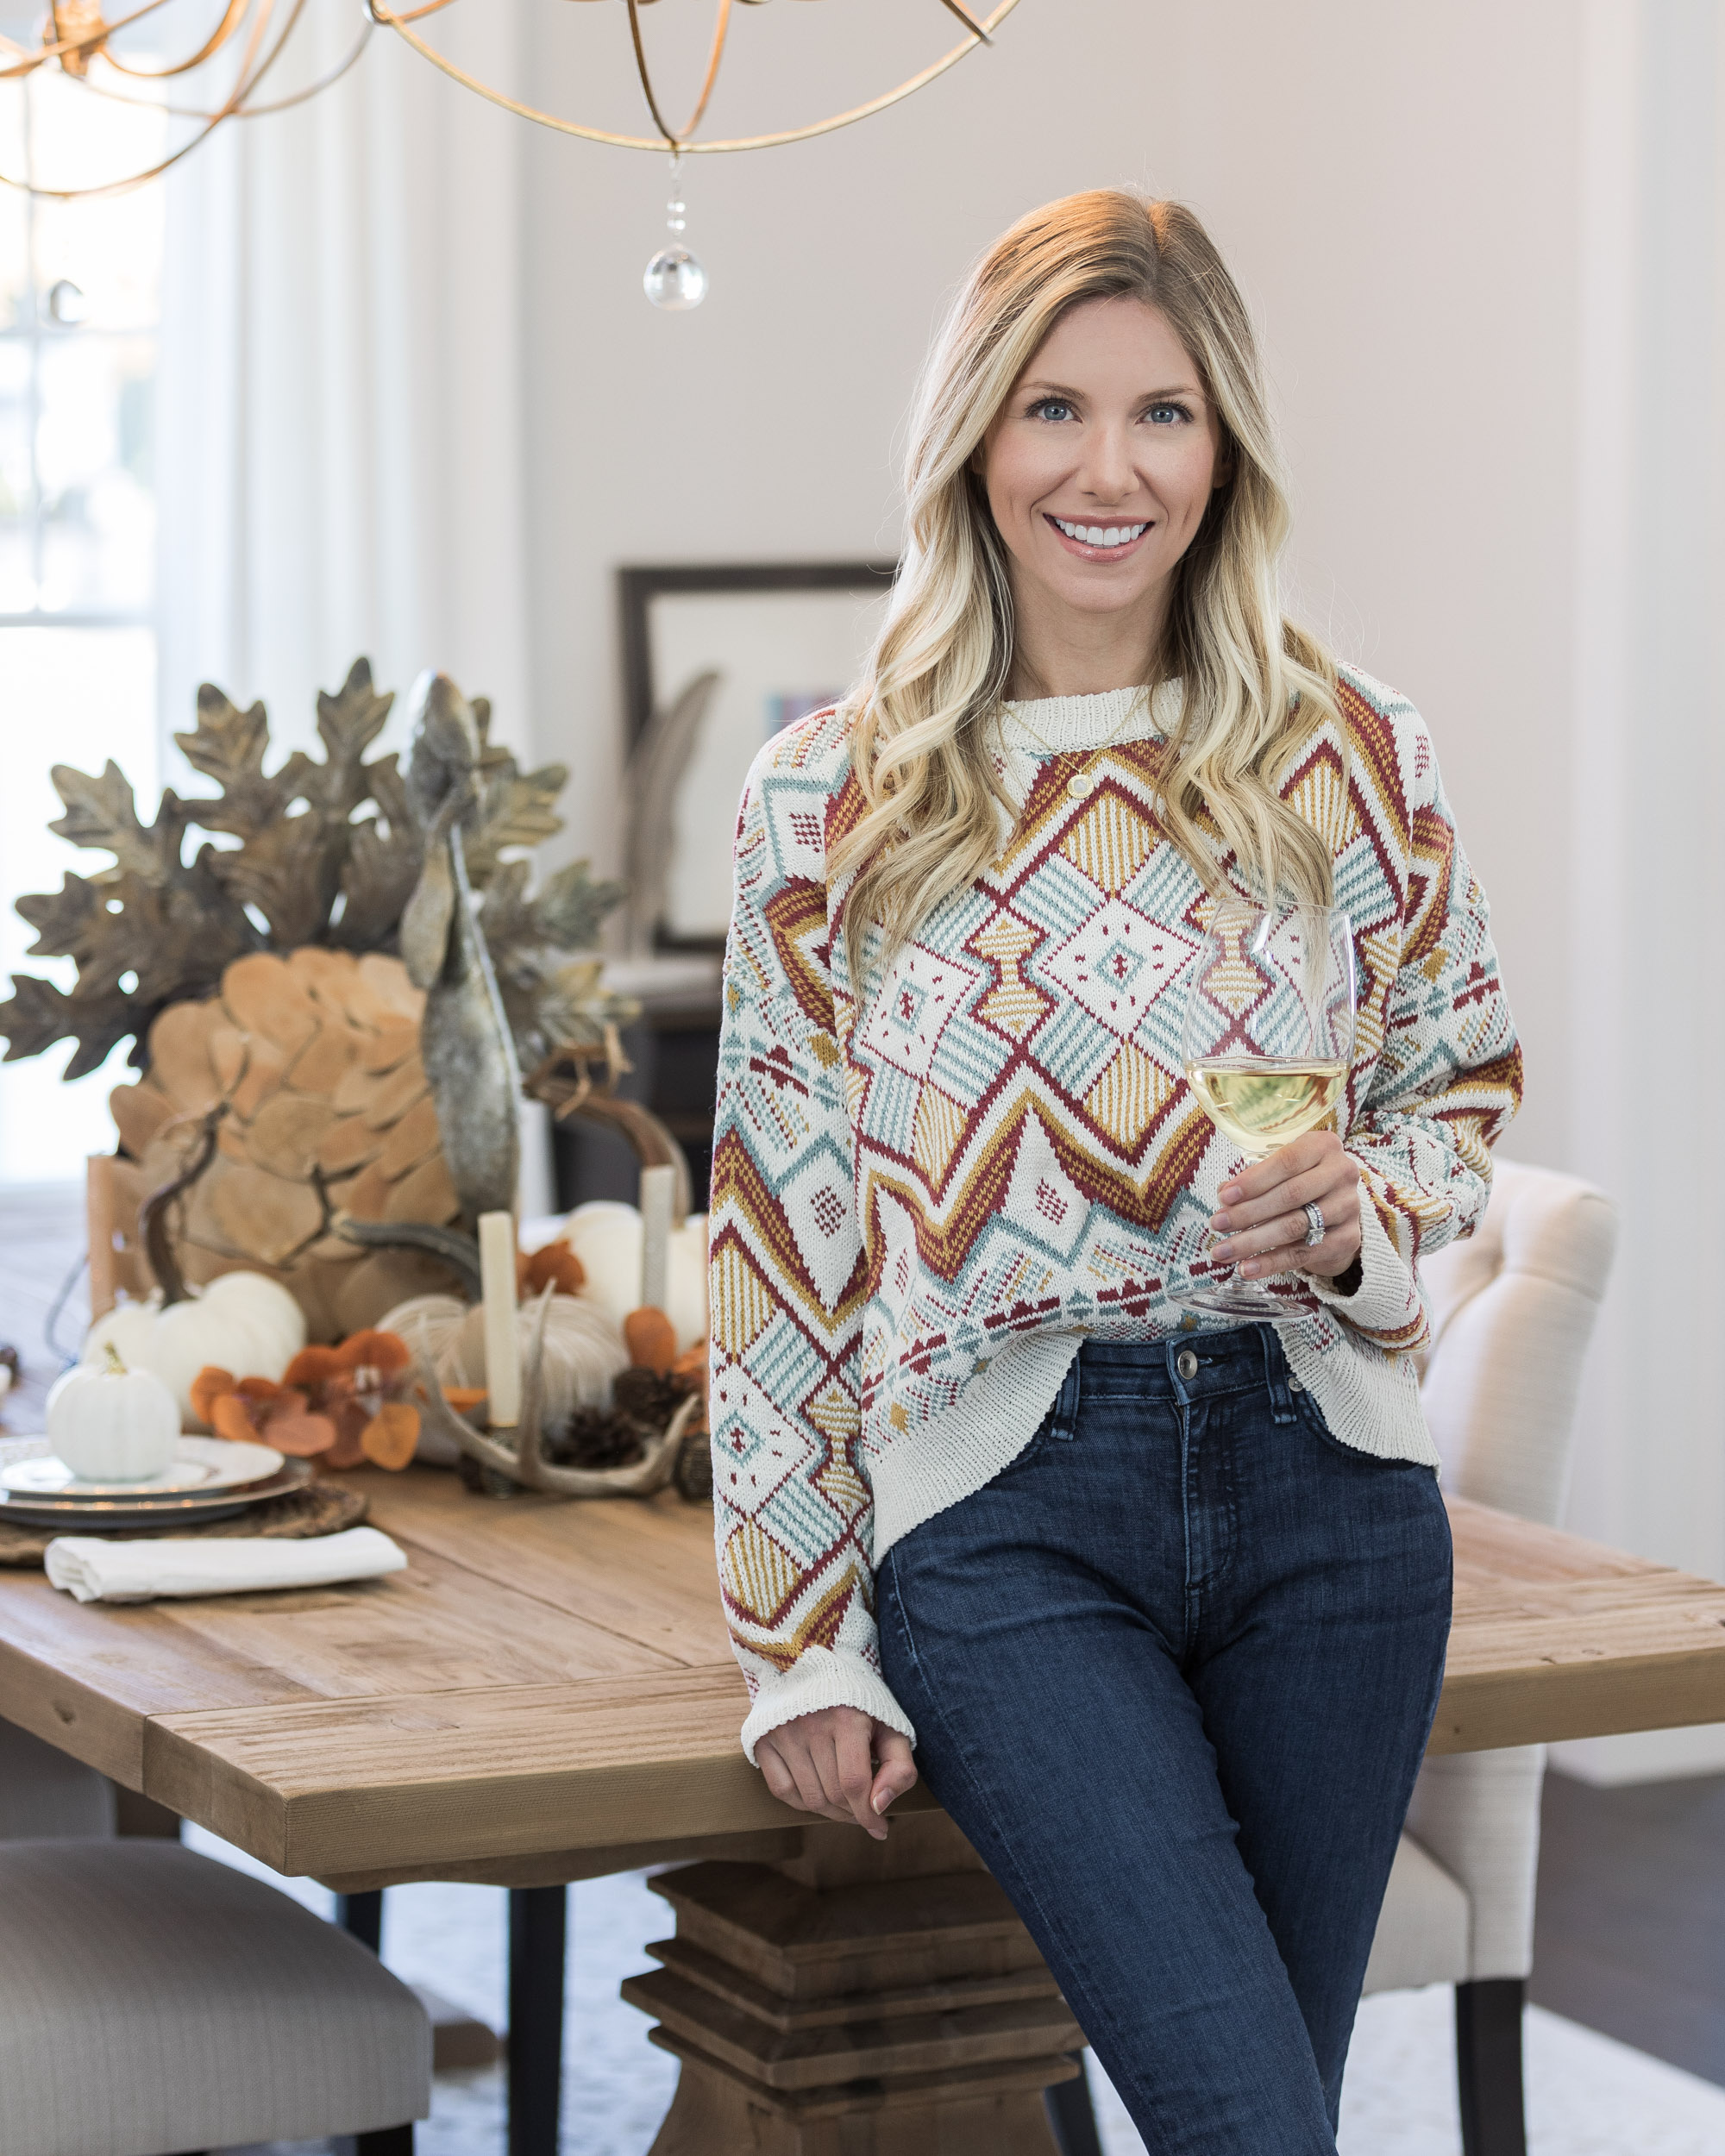 makenzie-childs-thanksgiving-with-family-the-glamorous-gal